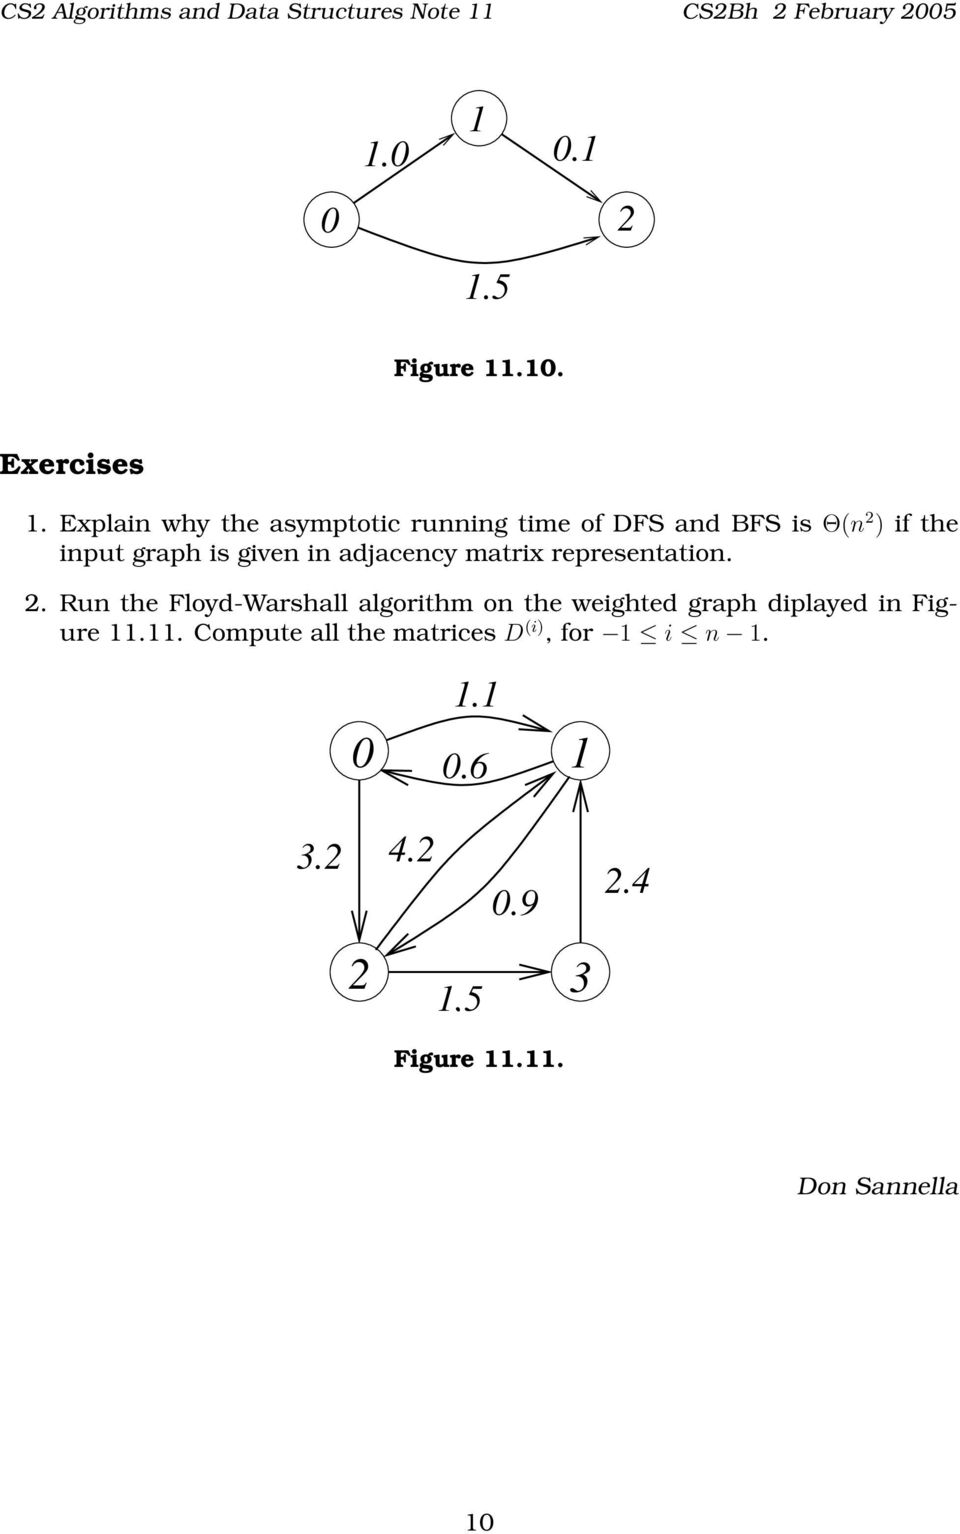 CS2 Algorithms and Data Structures Note 11  Breadth-First